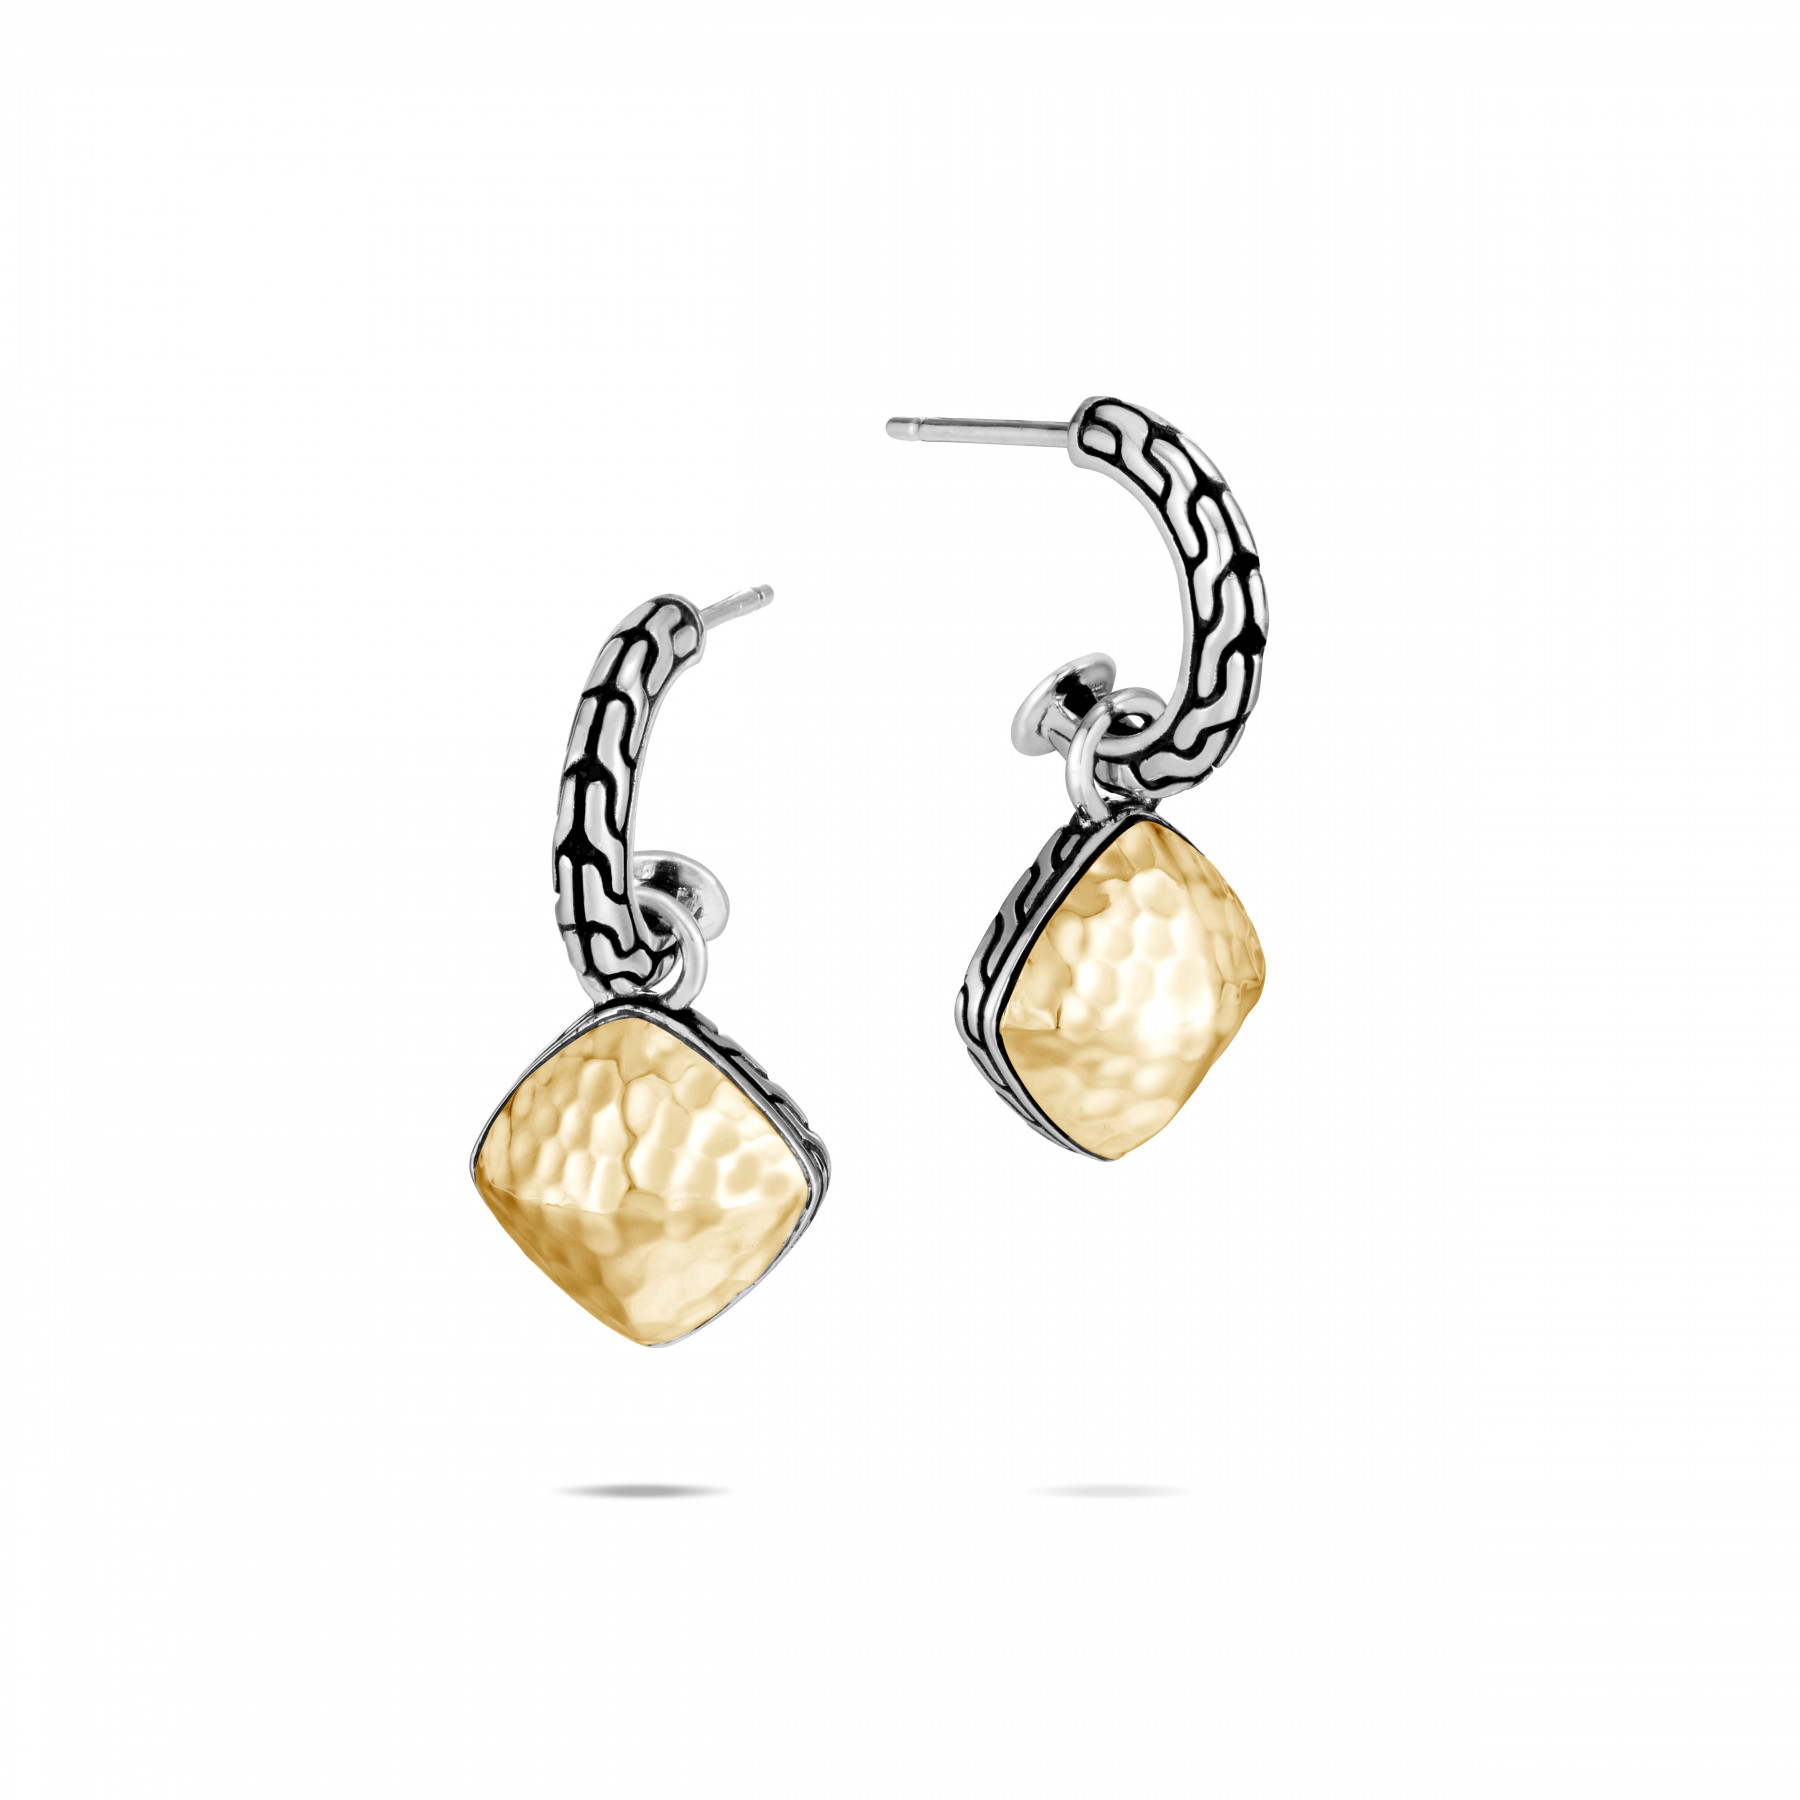 John Hardy Classic Chain Silver and Gold Drop Earrings front view